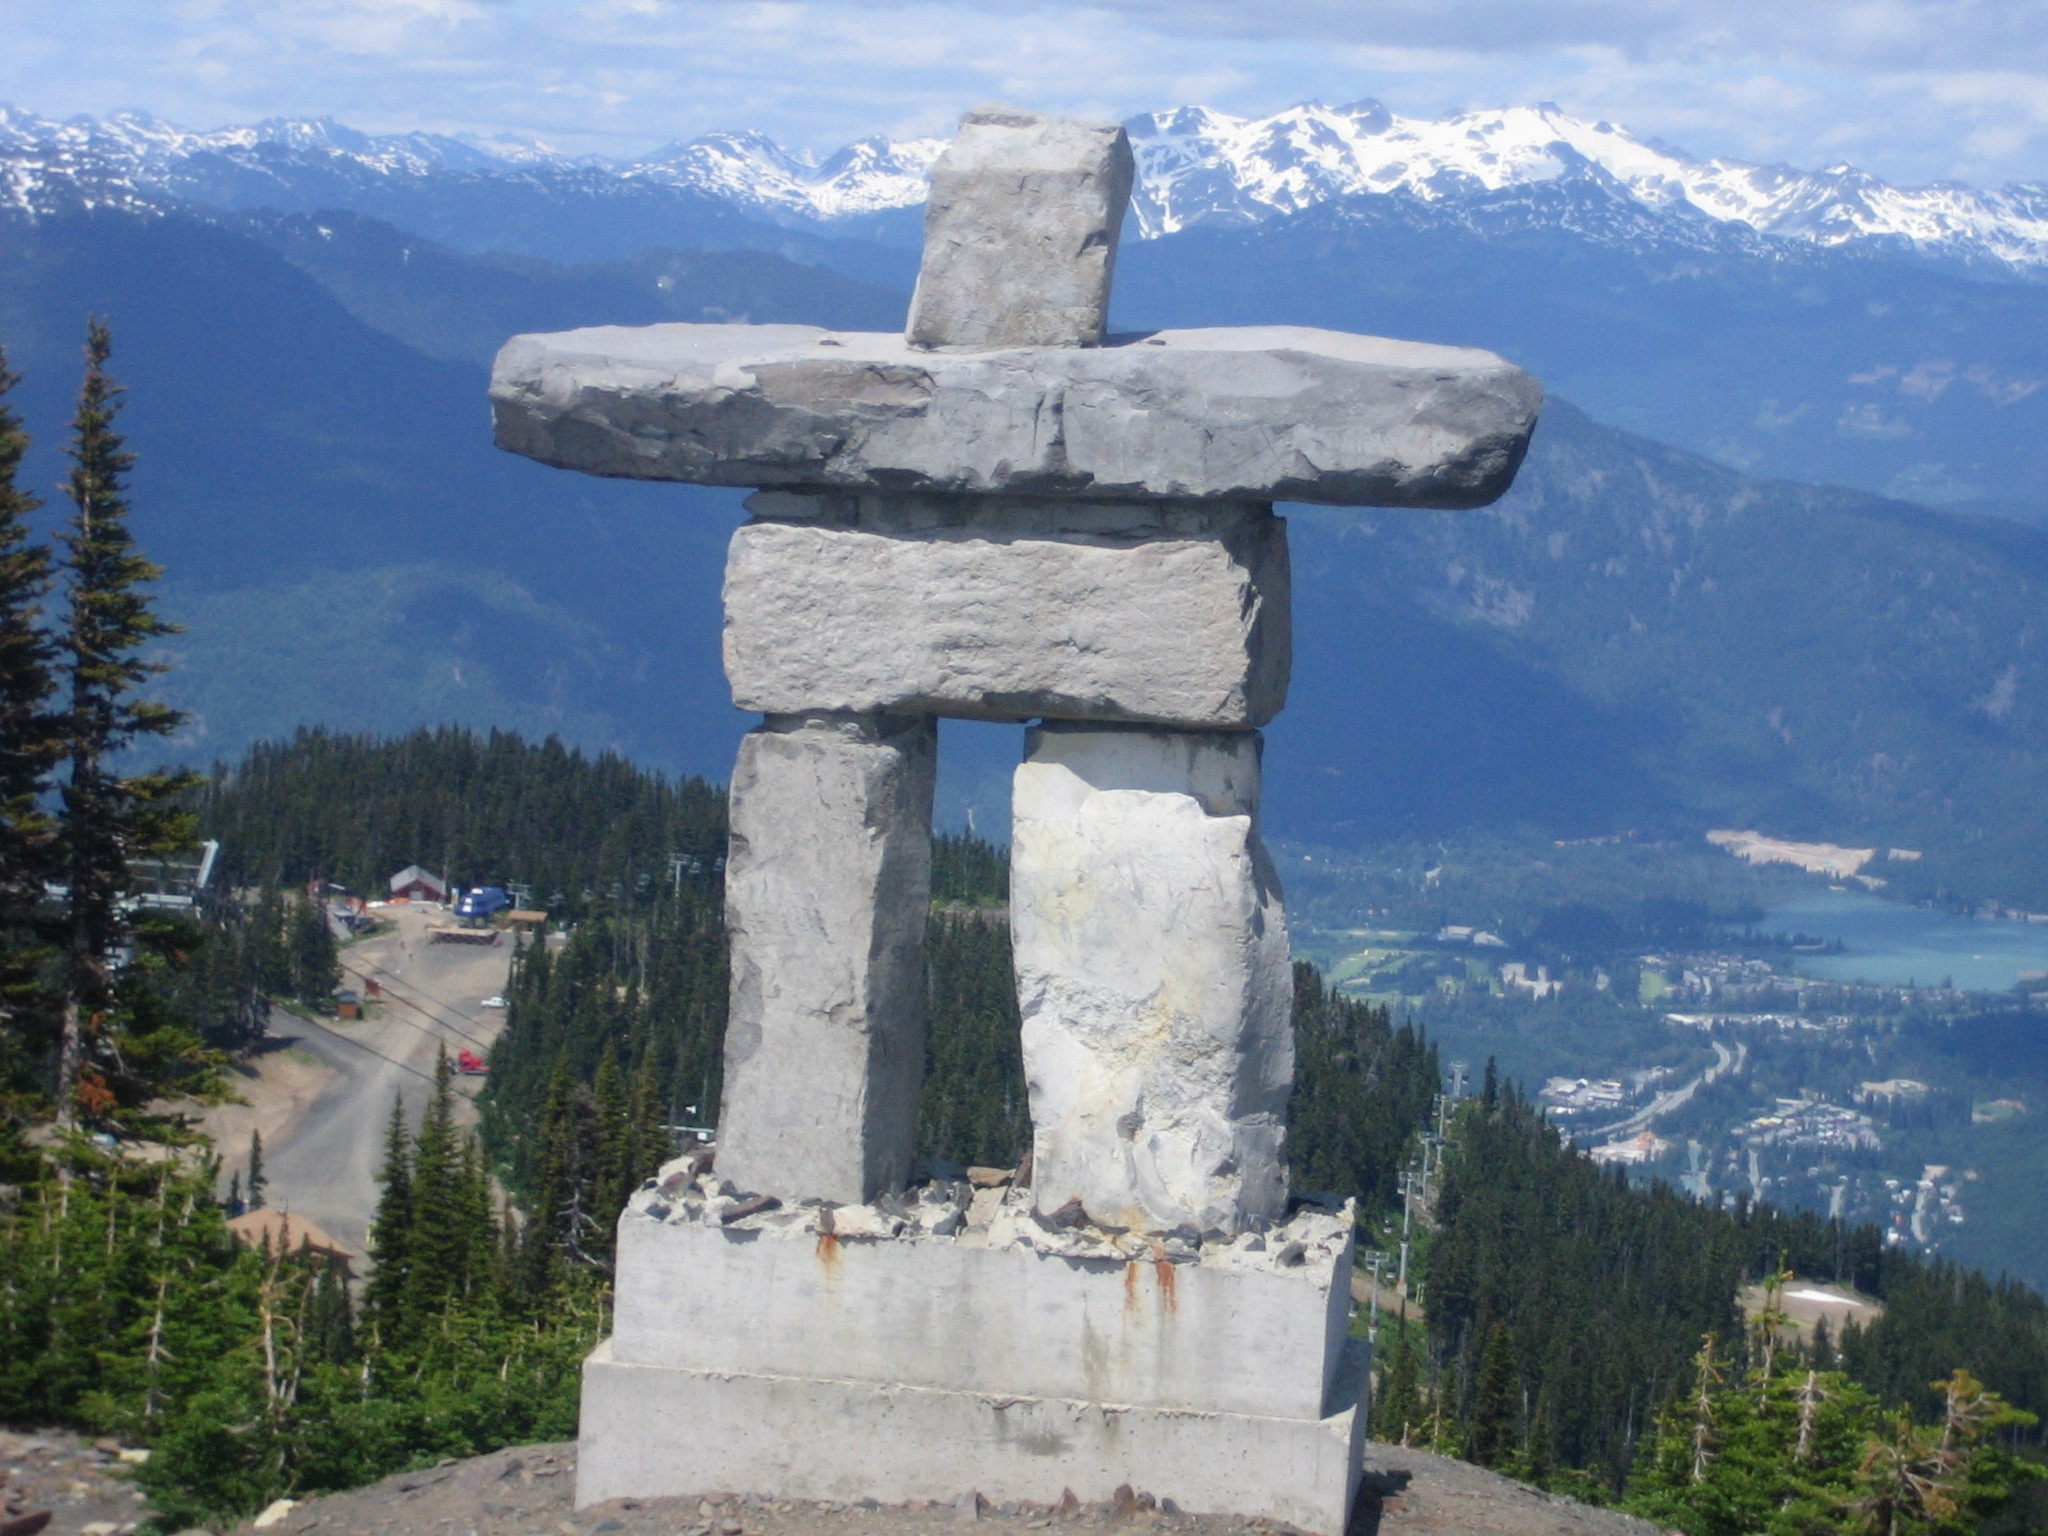 This rock statue at Whistler demonstrates the concept of balance very well